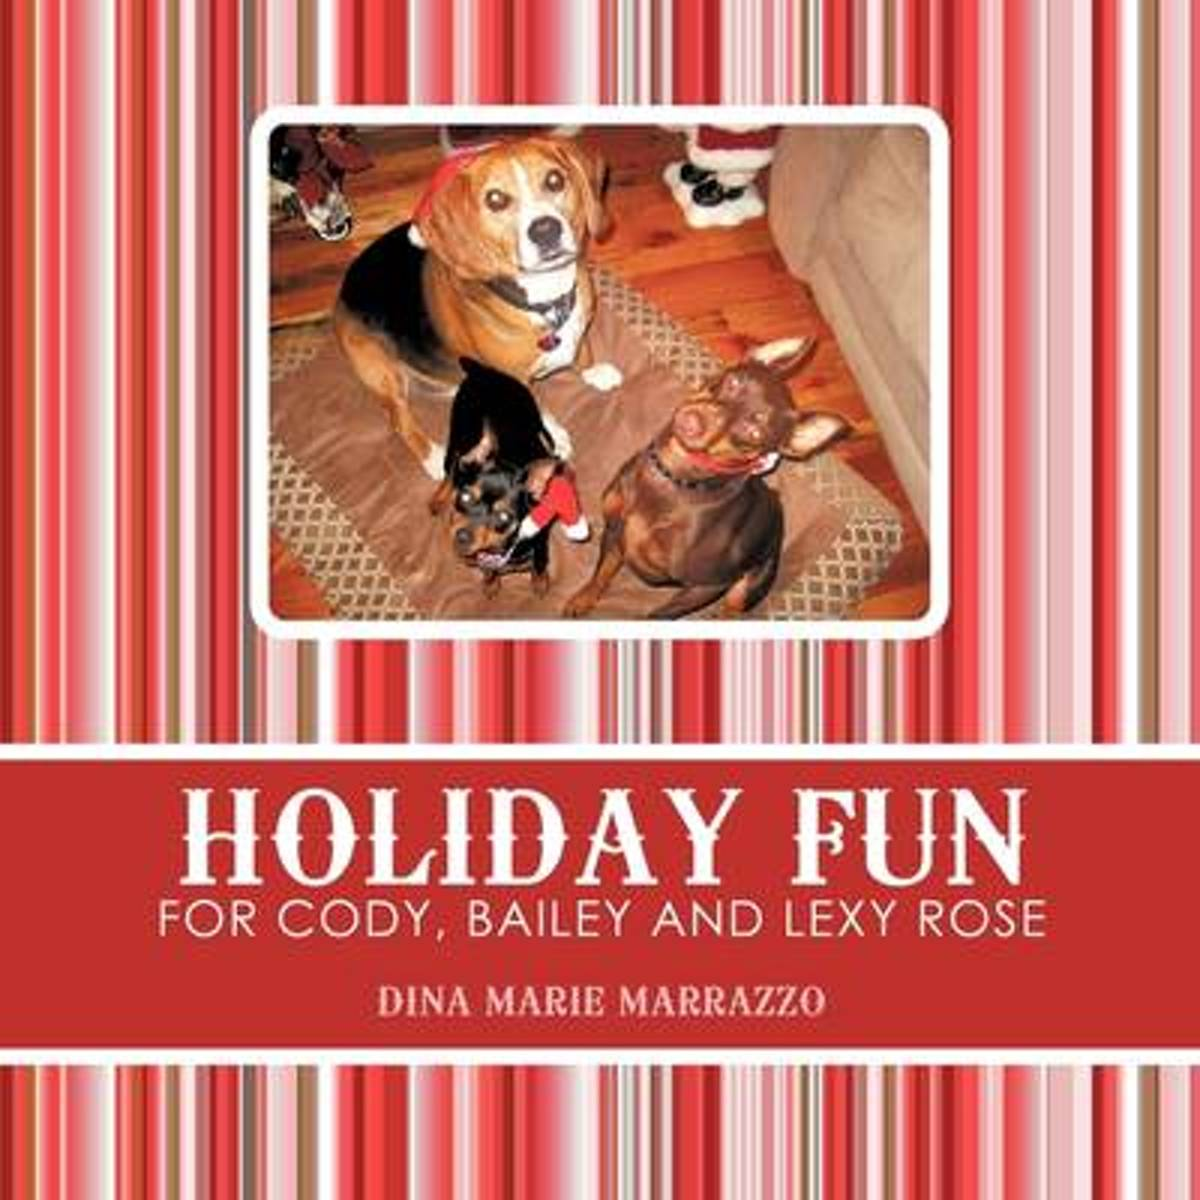 Holiday Fun for Cody, Bailey and Lexy Rose